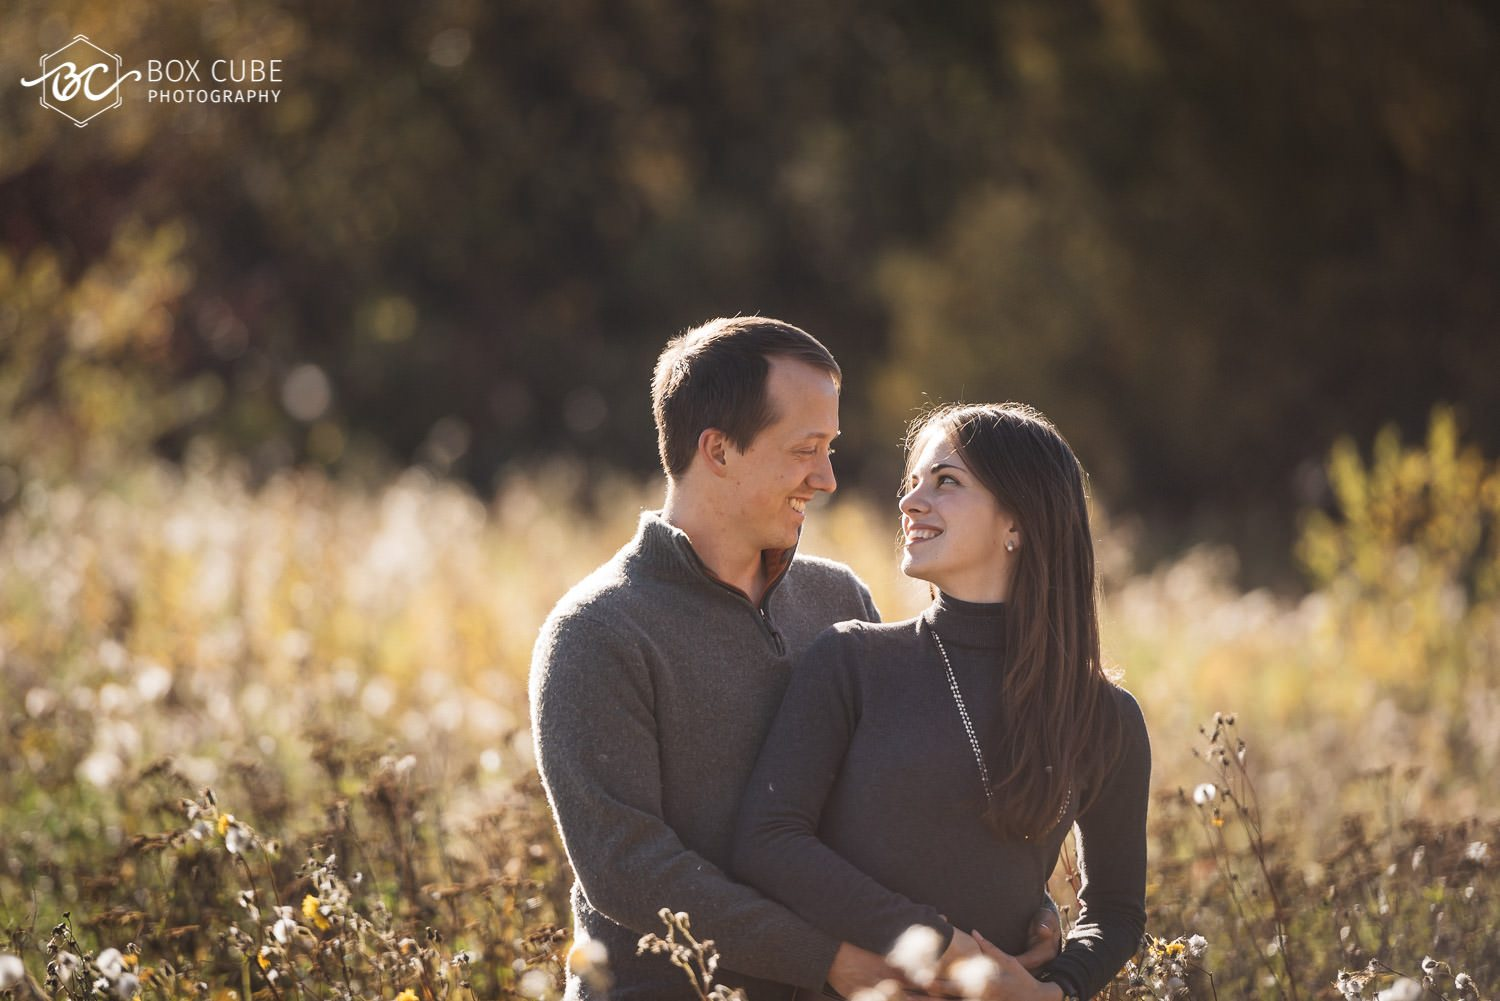 engagement photos at peace hills park, wetaskiwin, alberta. Couple standing in trees.